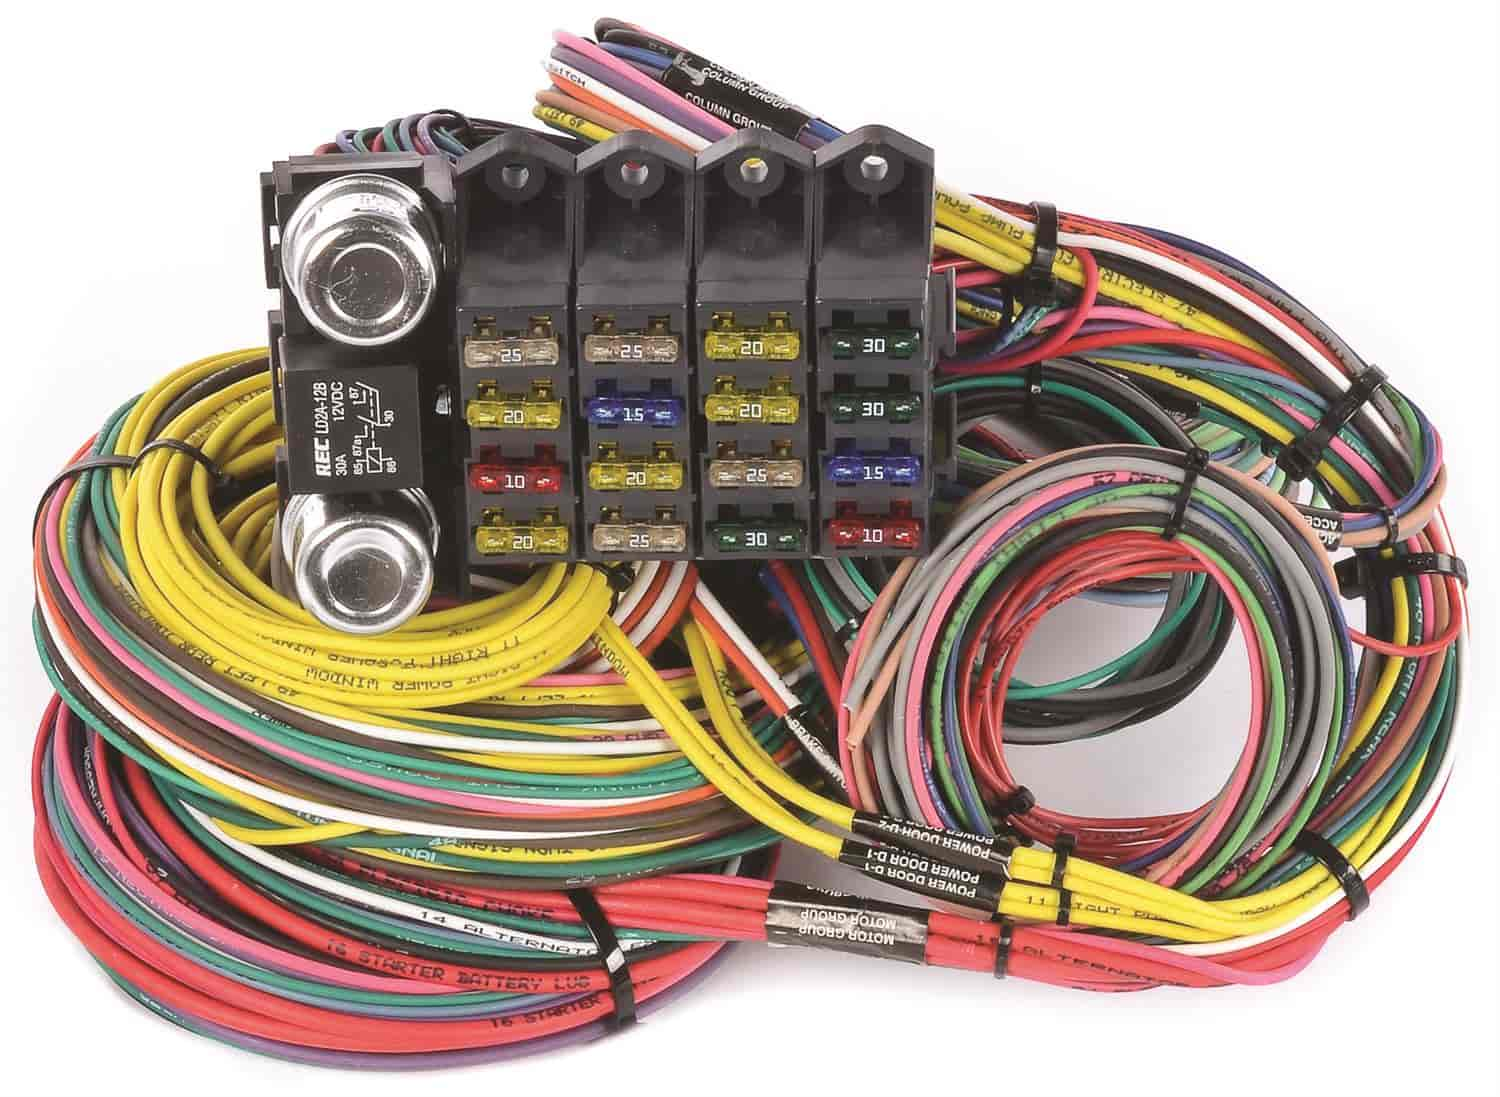 555 10405 jegs performance products 10405 universal wiring harness, 20 12 circuit universal wiring harness at bakdesigns.co